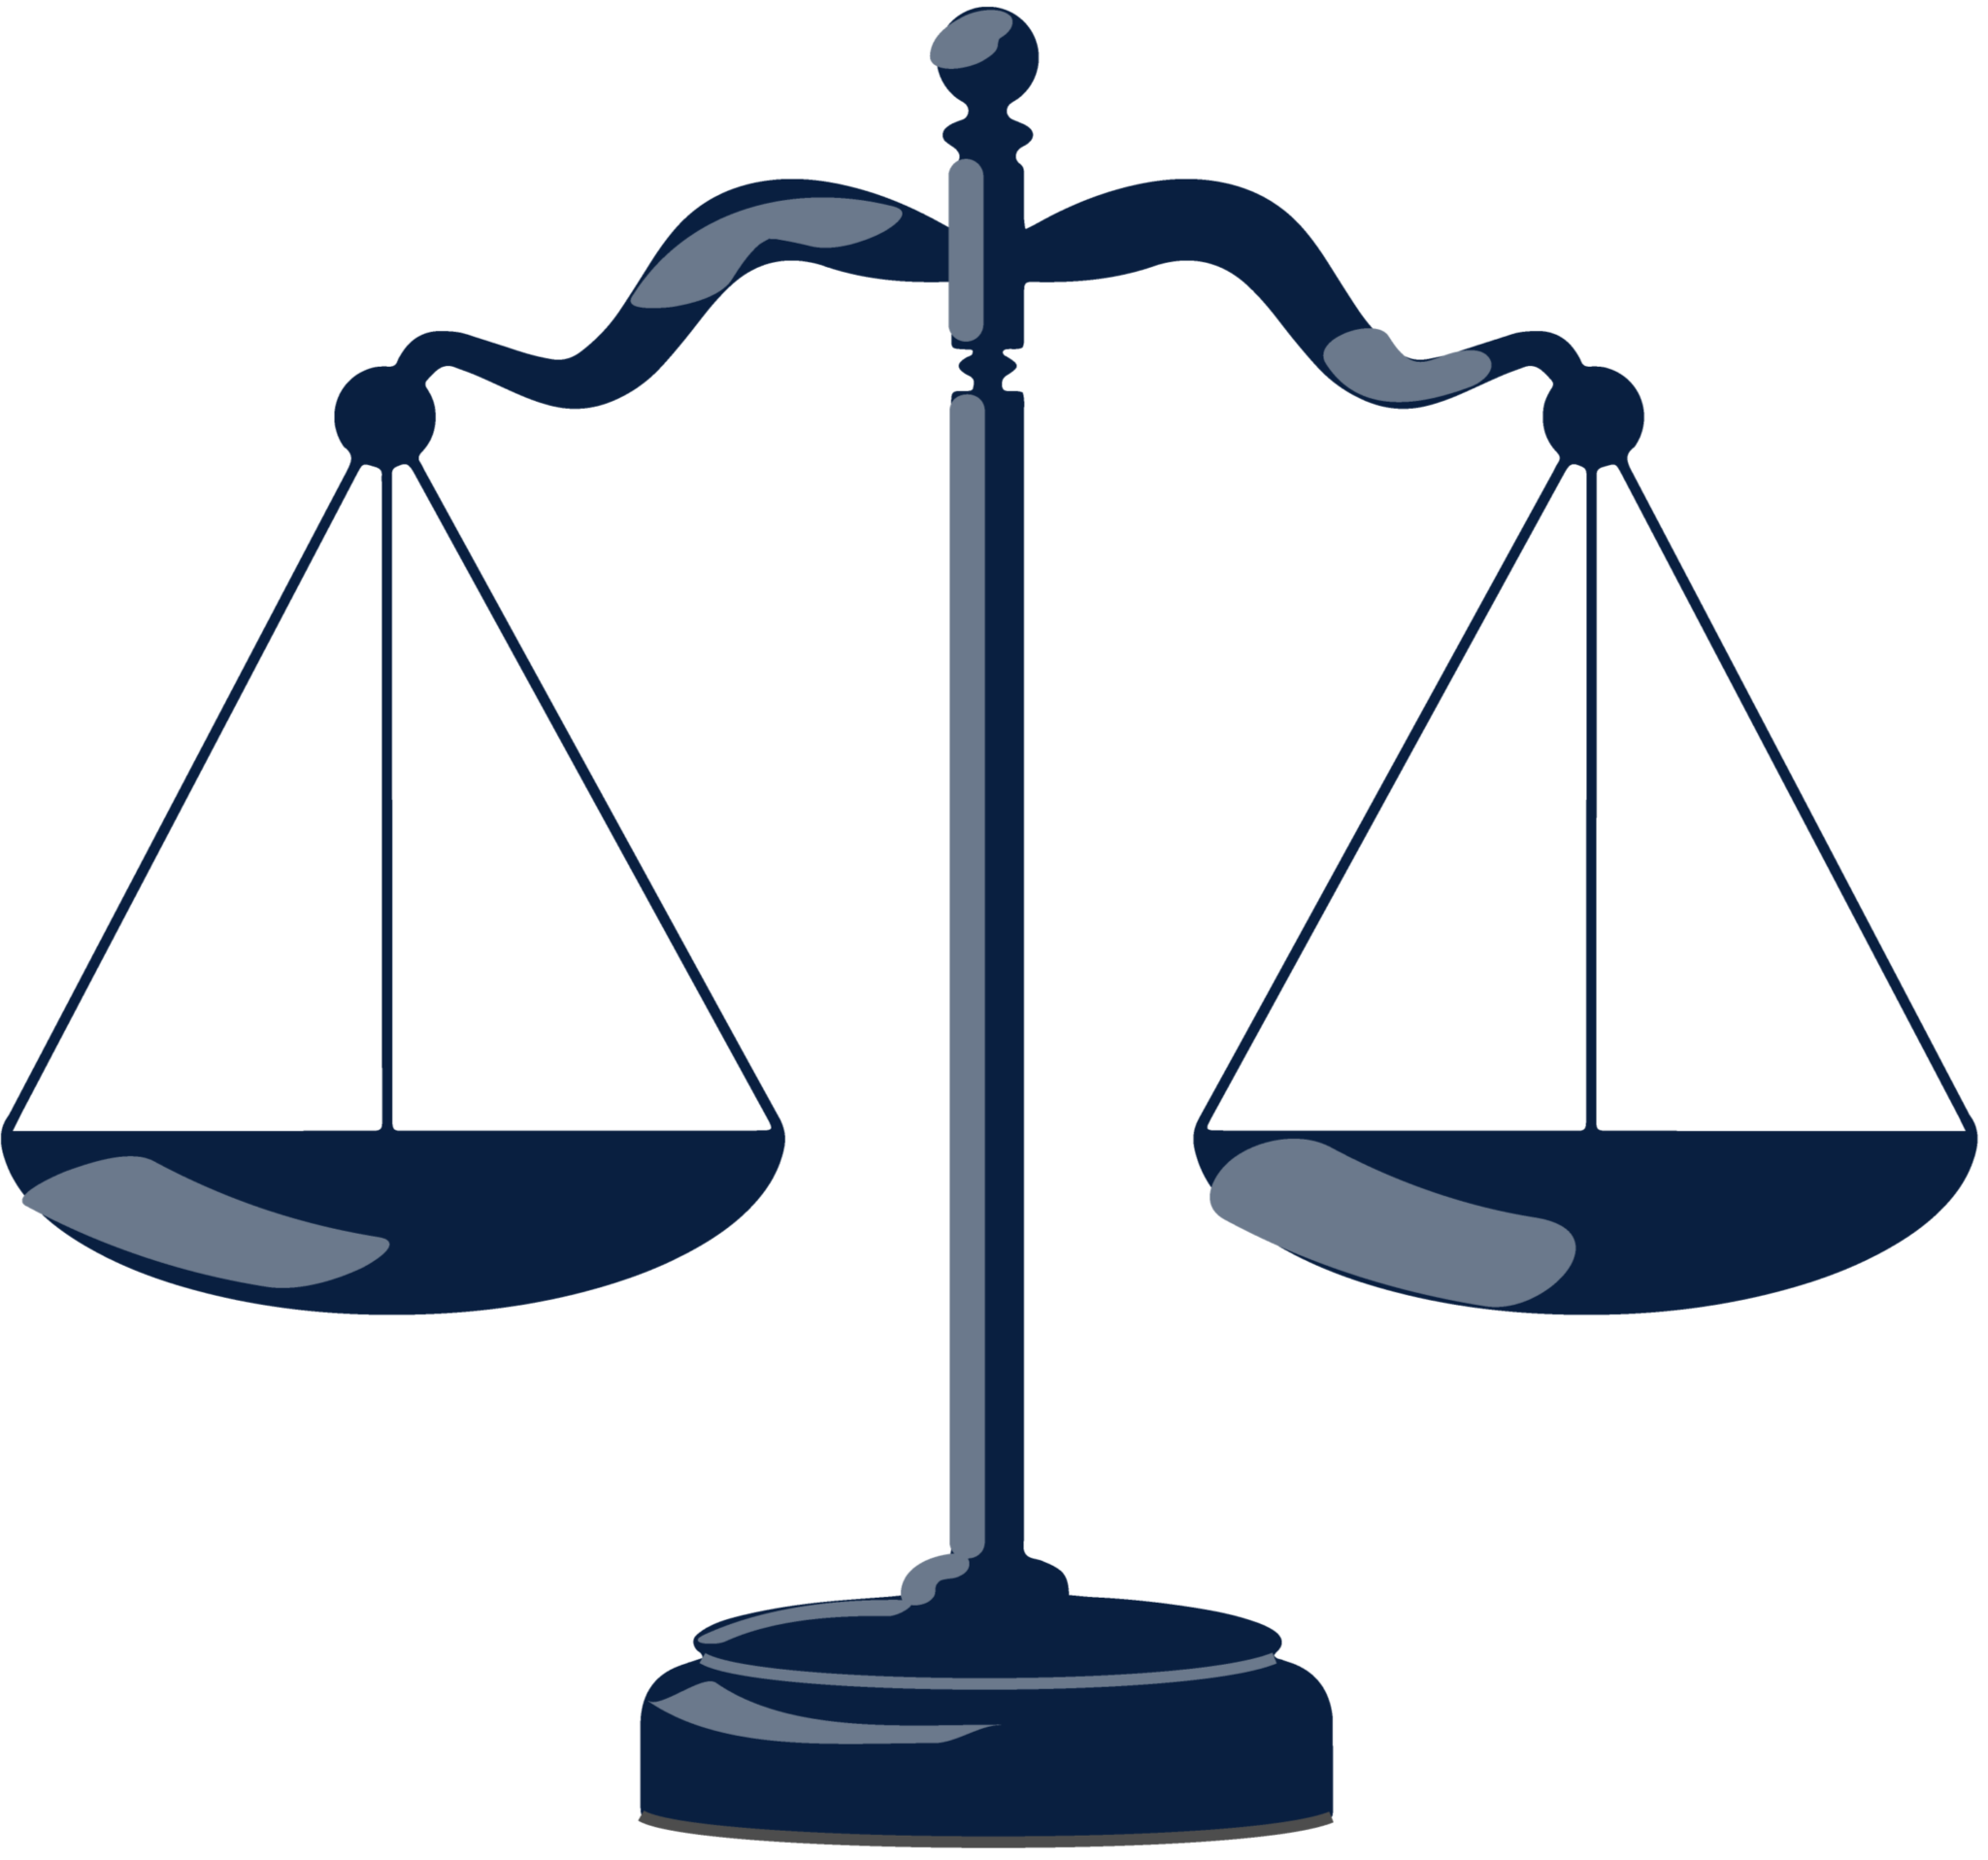 Laws clipart legal service. Services small business benefits